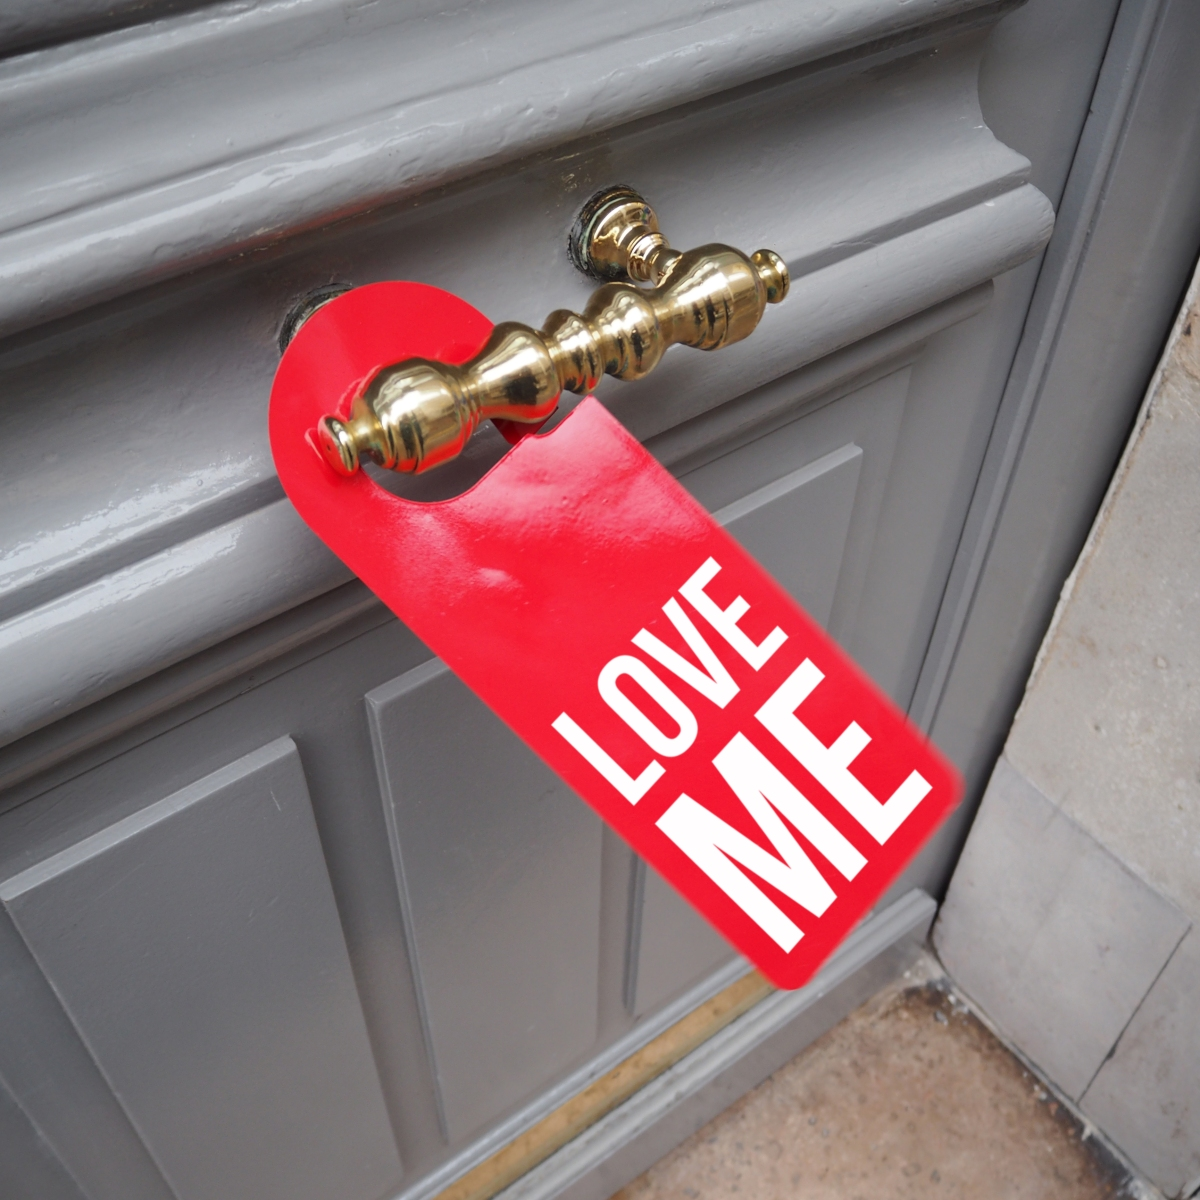 Door hanger « Love me » – Paris – 2016 – Le Sonneur